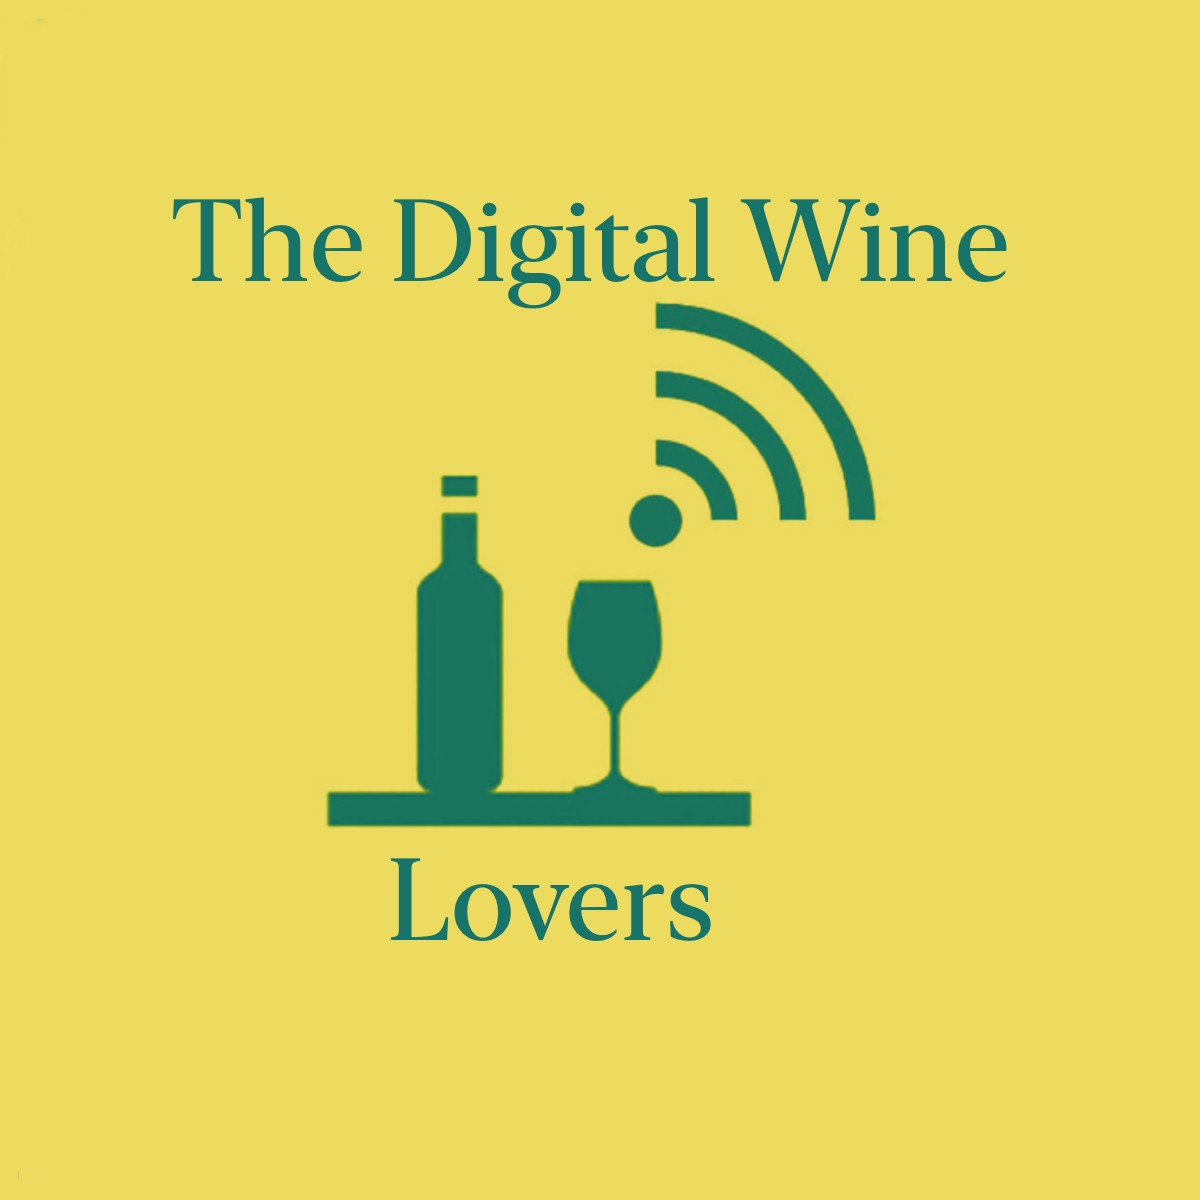 The Digital Wine Lovers